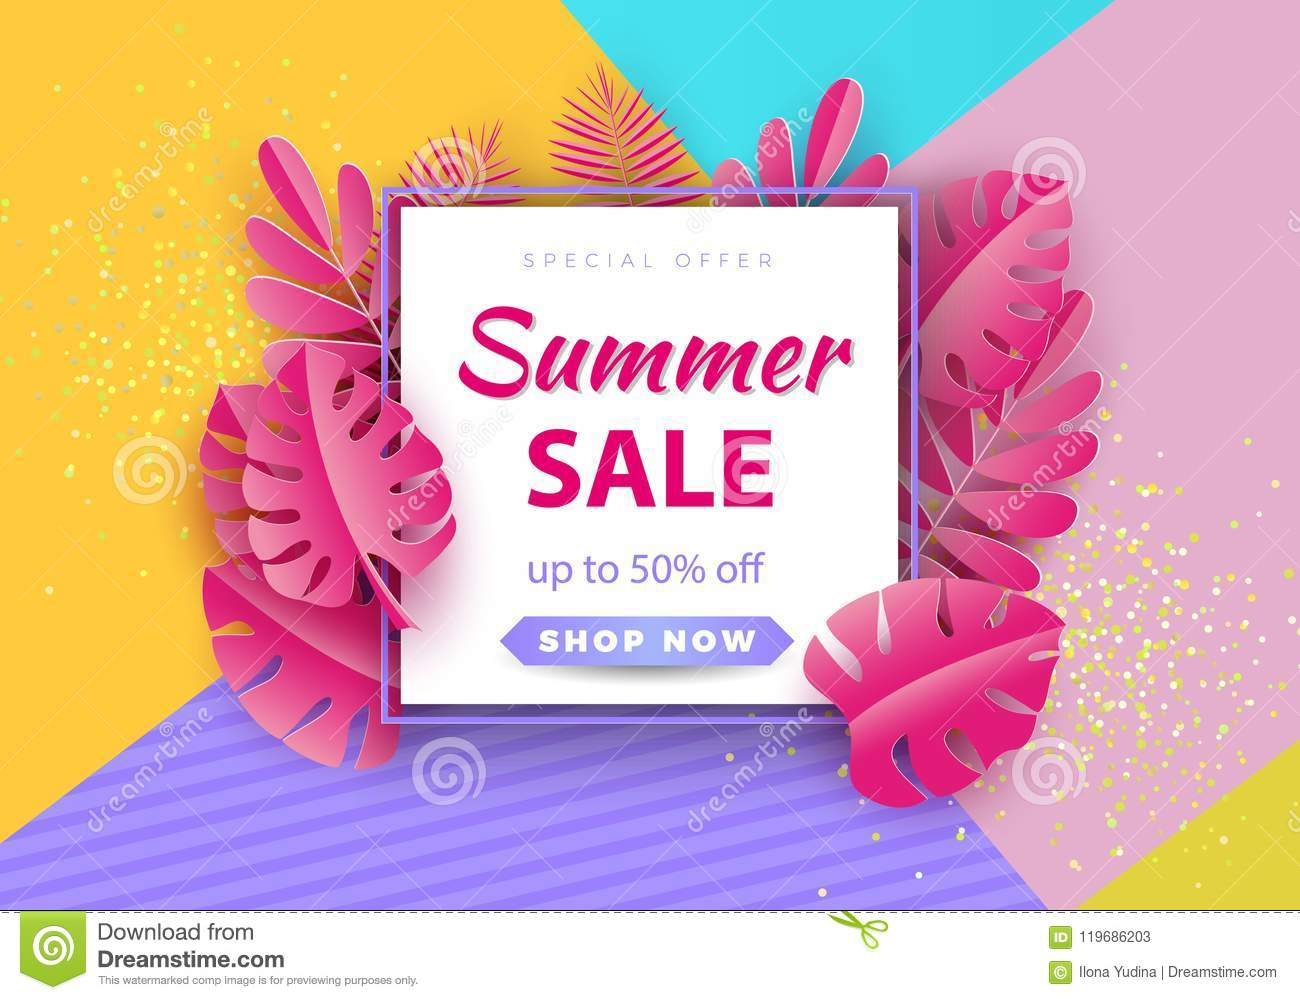 Summer Sale Background For Banners Pink Palm Leaves On A Bright Background Season Discounts Template For Flyer Invitation Poster Brochure Discount On